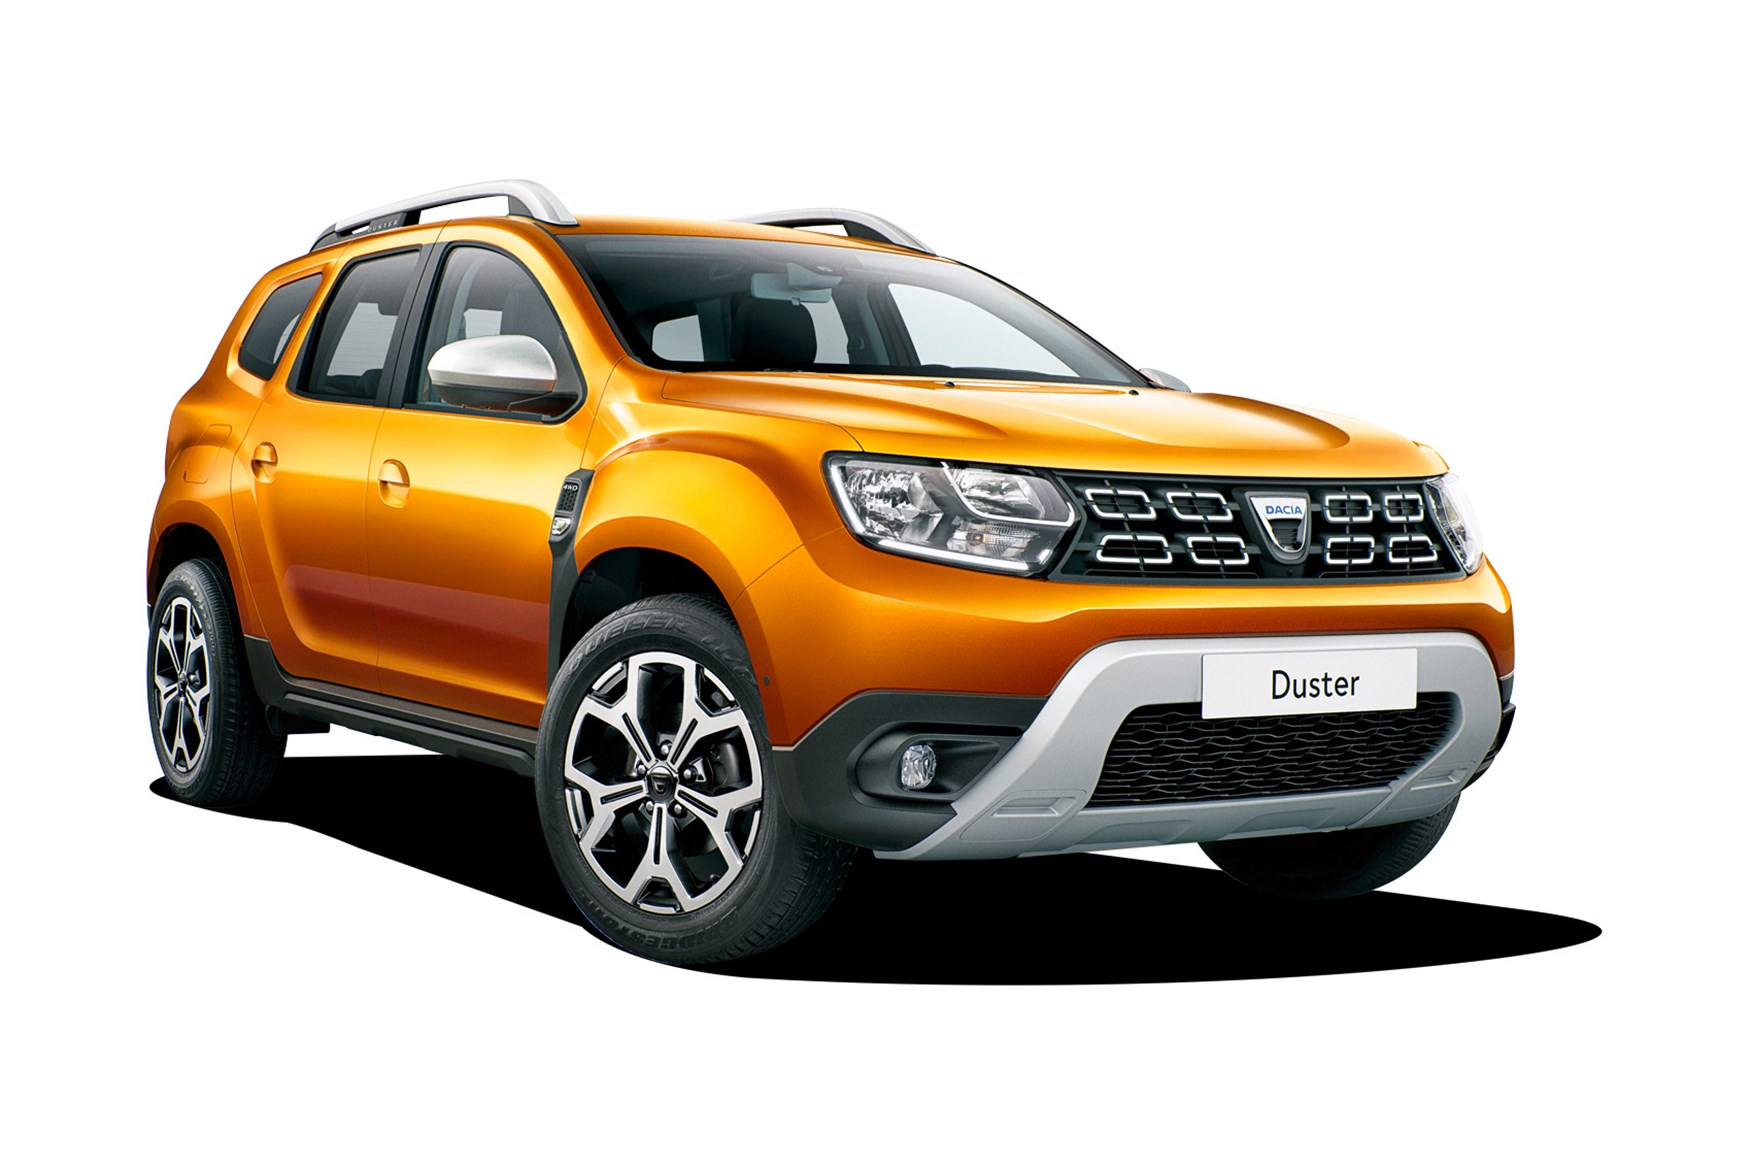 Duster Dacia 2018 >> New 2018 Dacia Duster revealed: pictures, specs, details by CAR Magazine